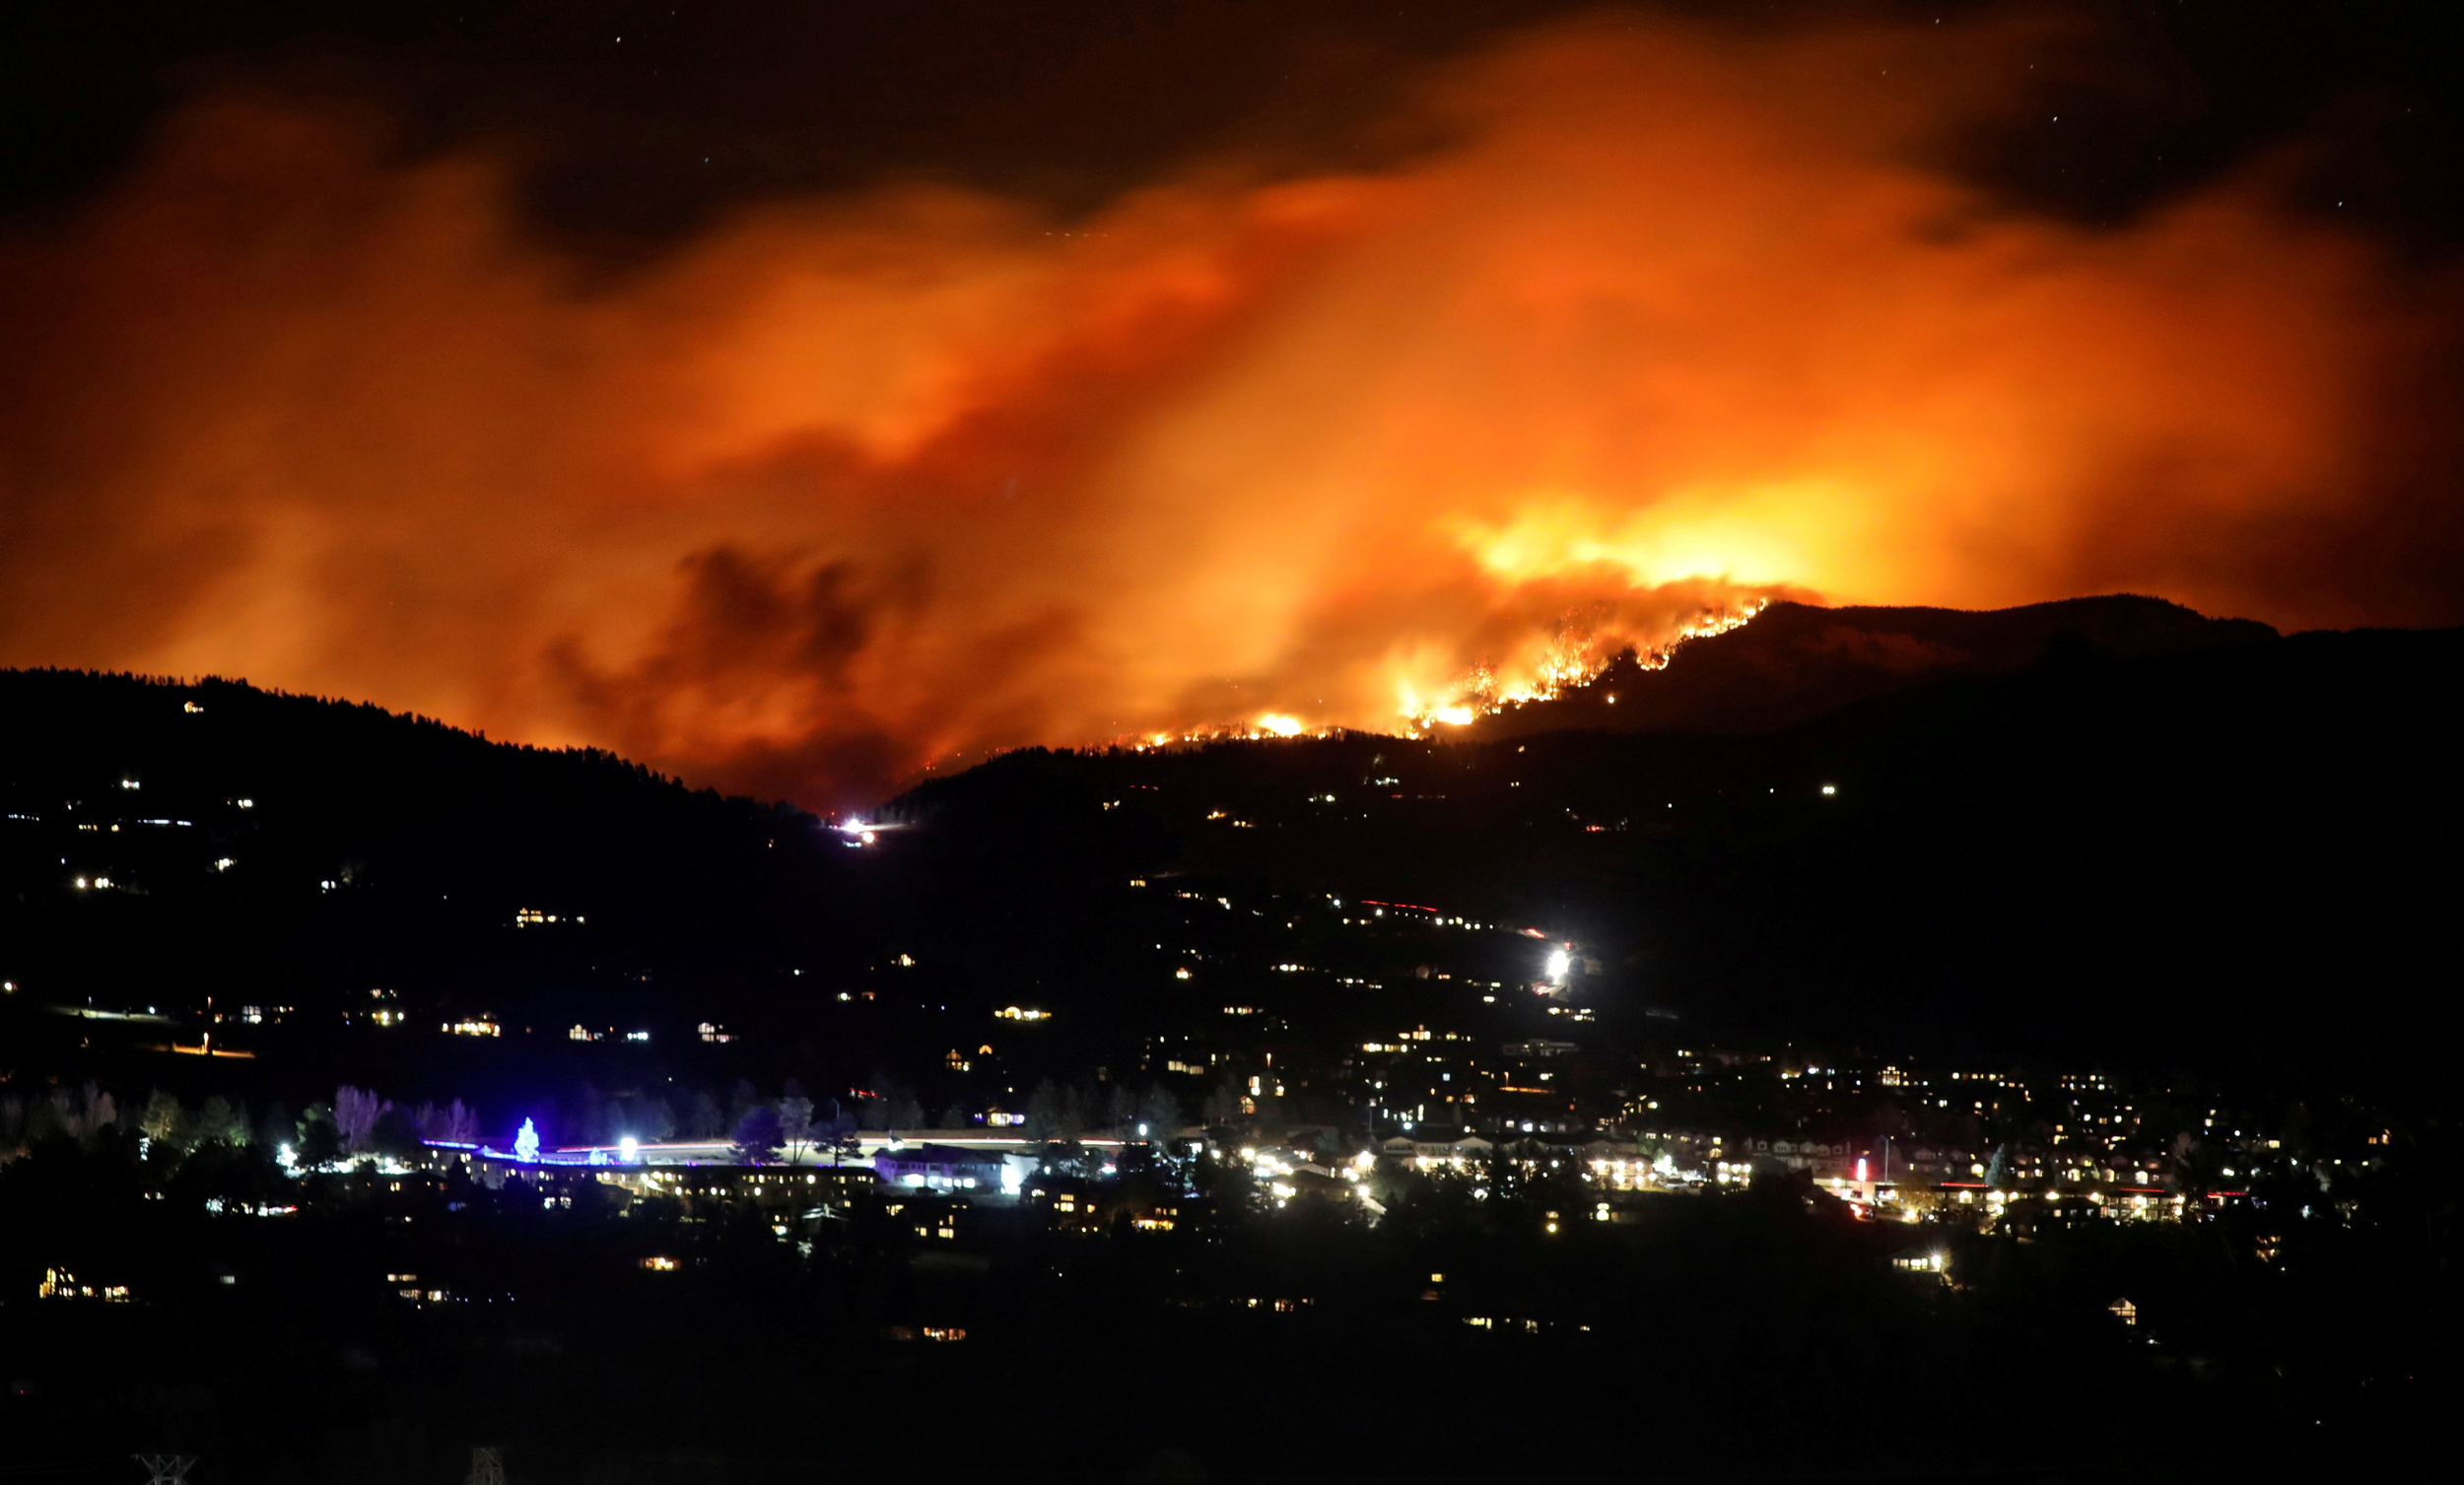 New-round-of-evacuations-for-Colorado-fire